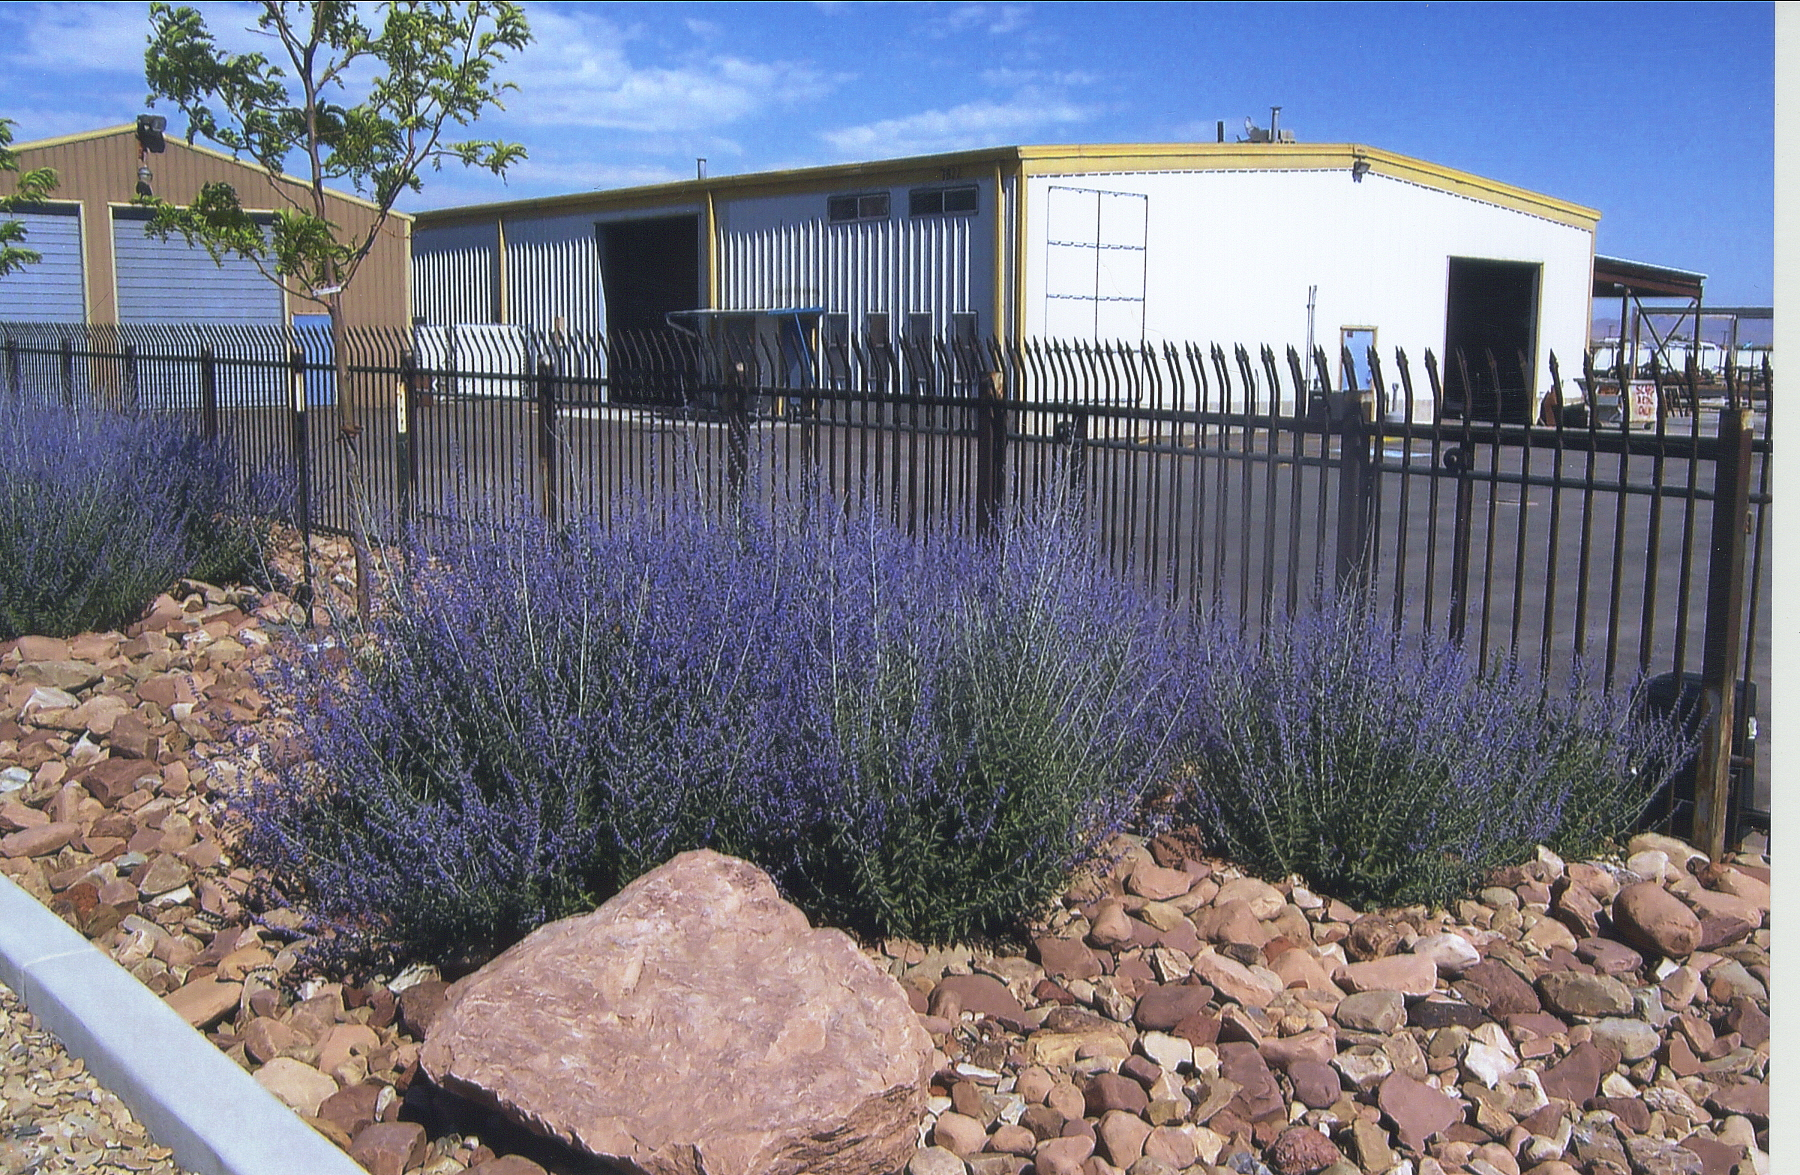 Xeriscaping Ridgeline Landscaping Salt Lake City